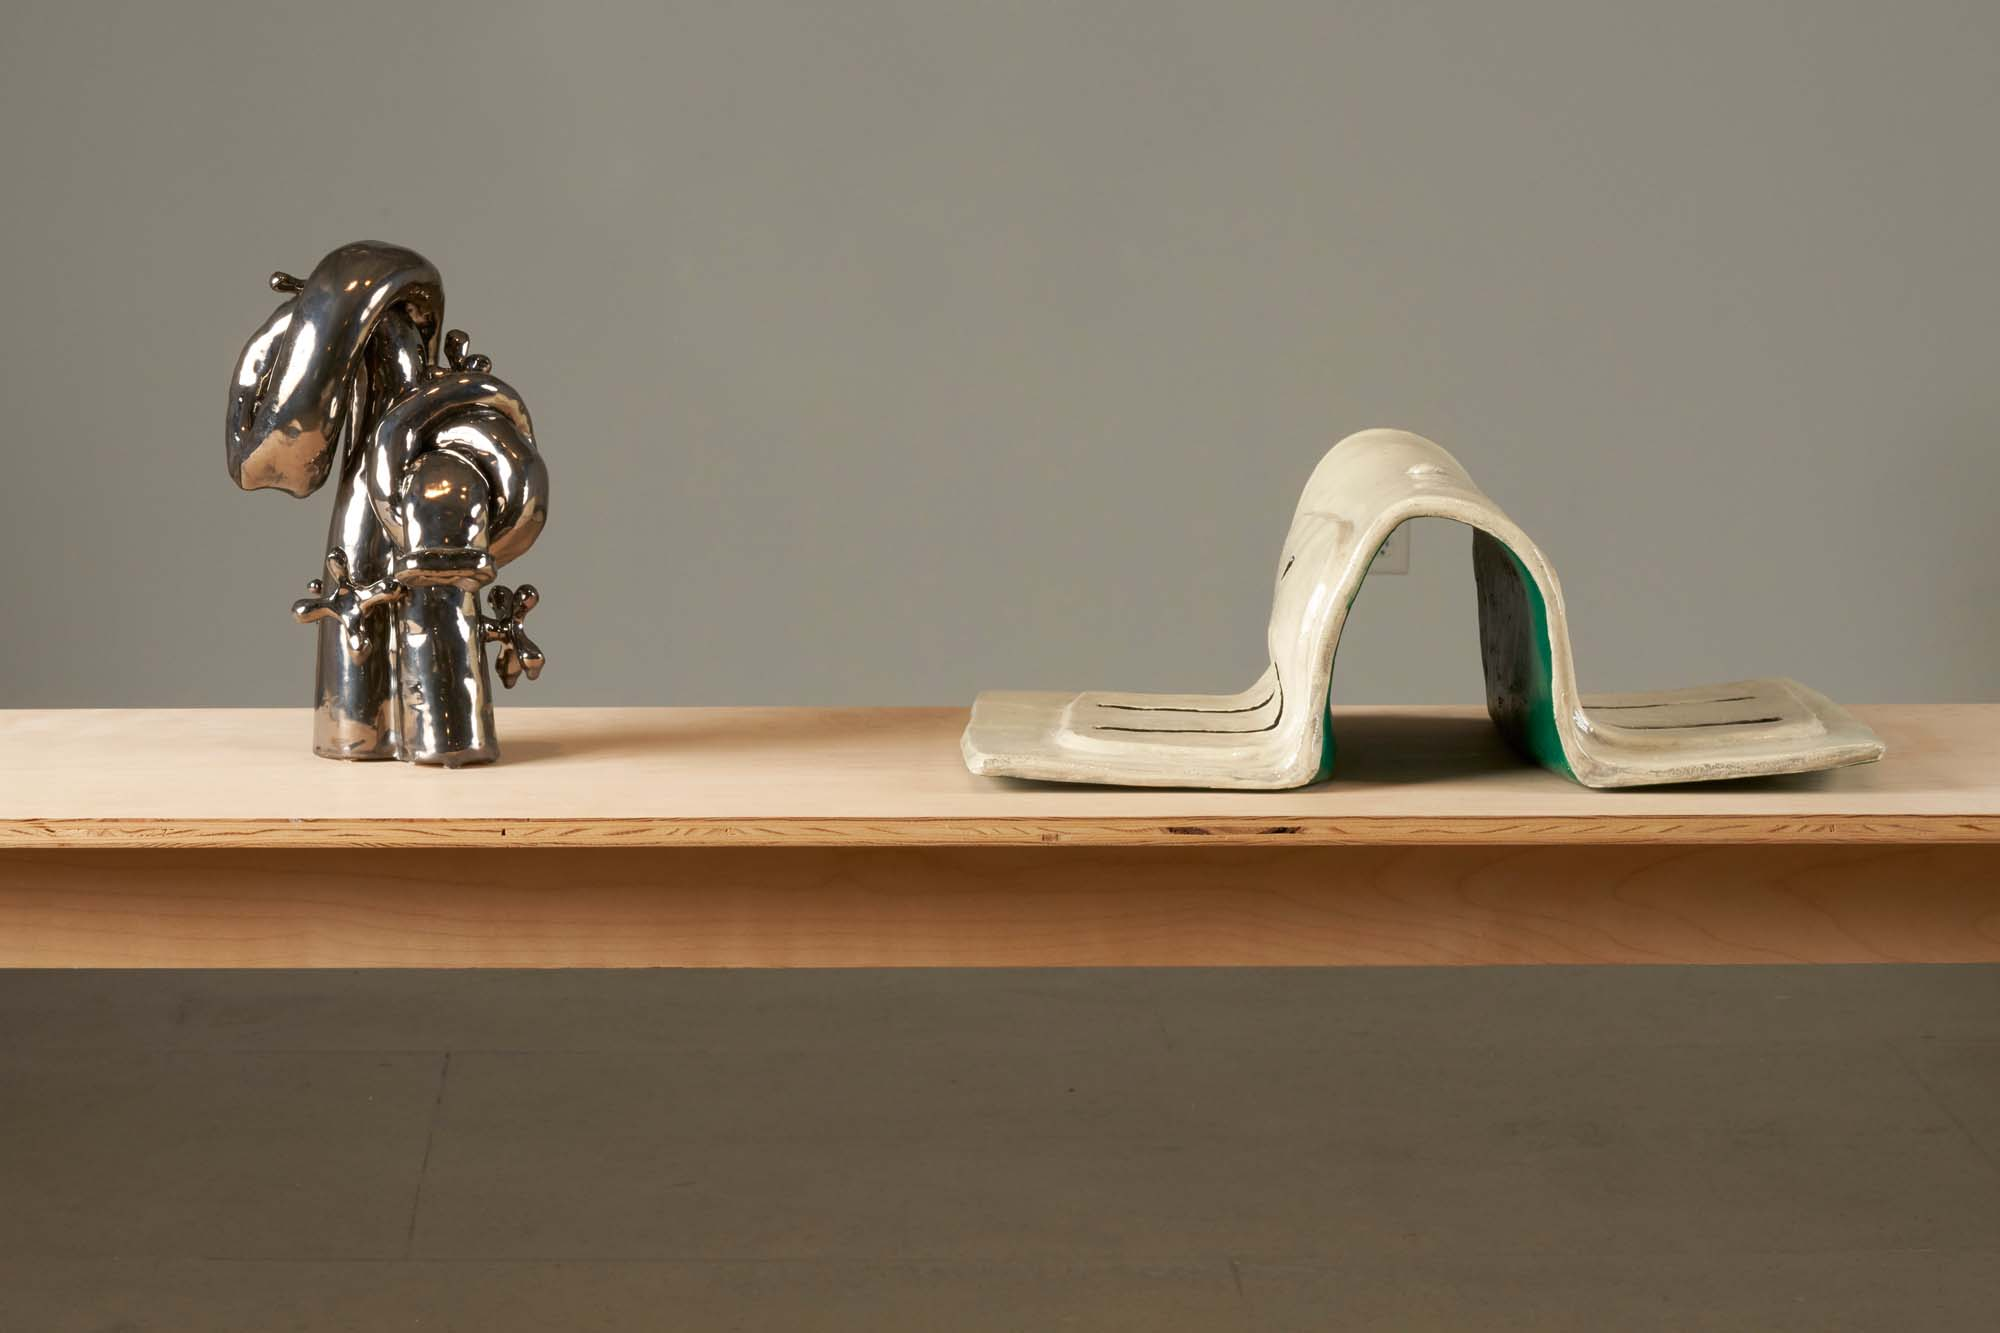 """Image of two sculptures on a tabletop, """"Outward and Bound"""" (left) and """"Out Let"""" (right) by Woody De Othello."""